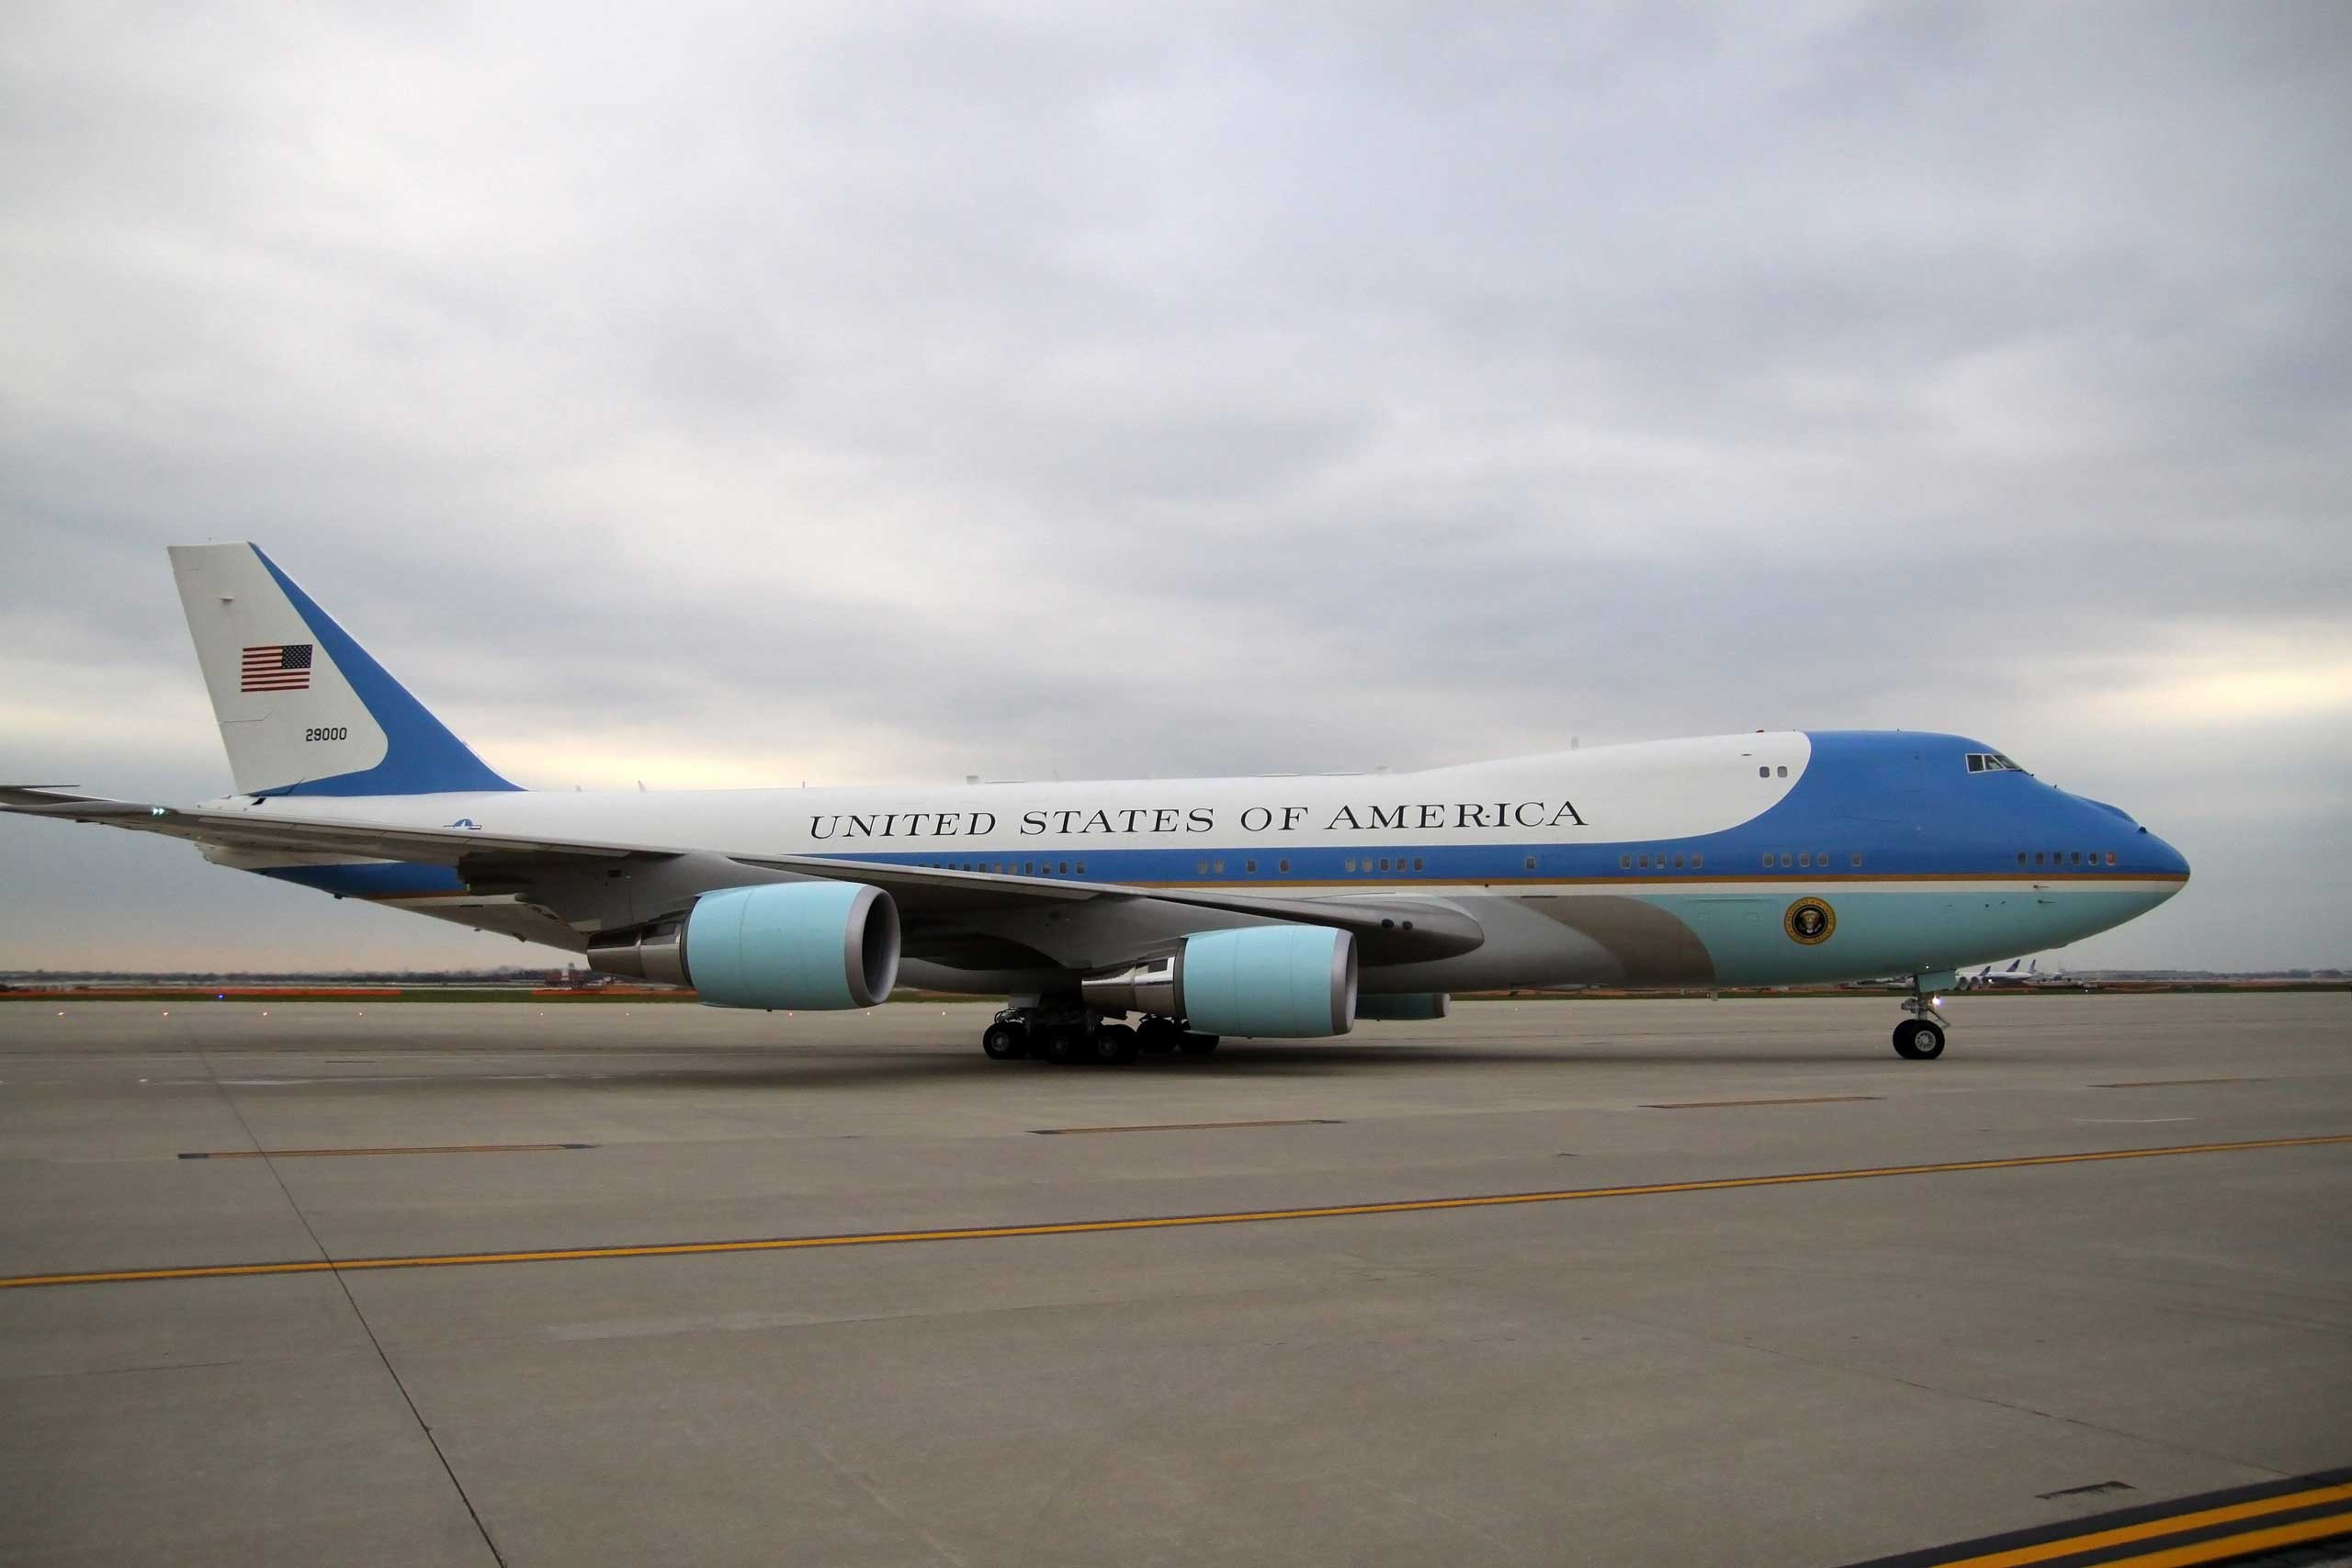 SAM 29000, also a Boeing 747, remains President Obama's primary transport aircraft.